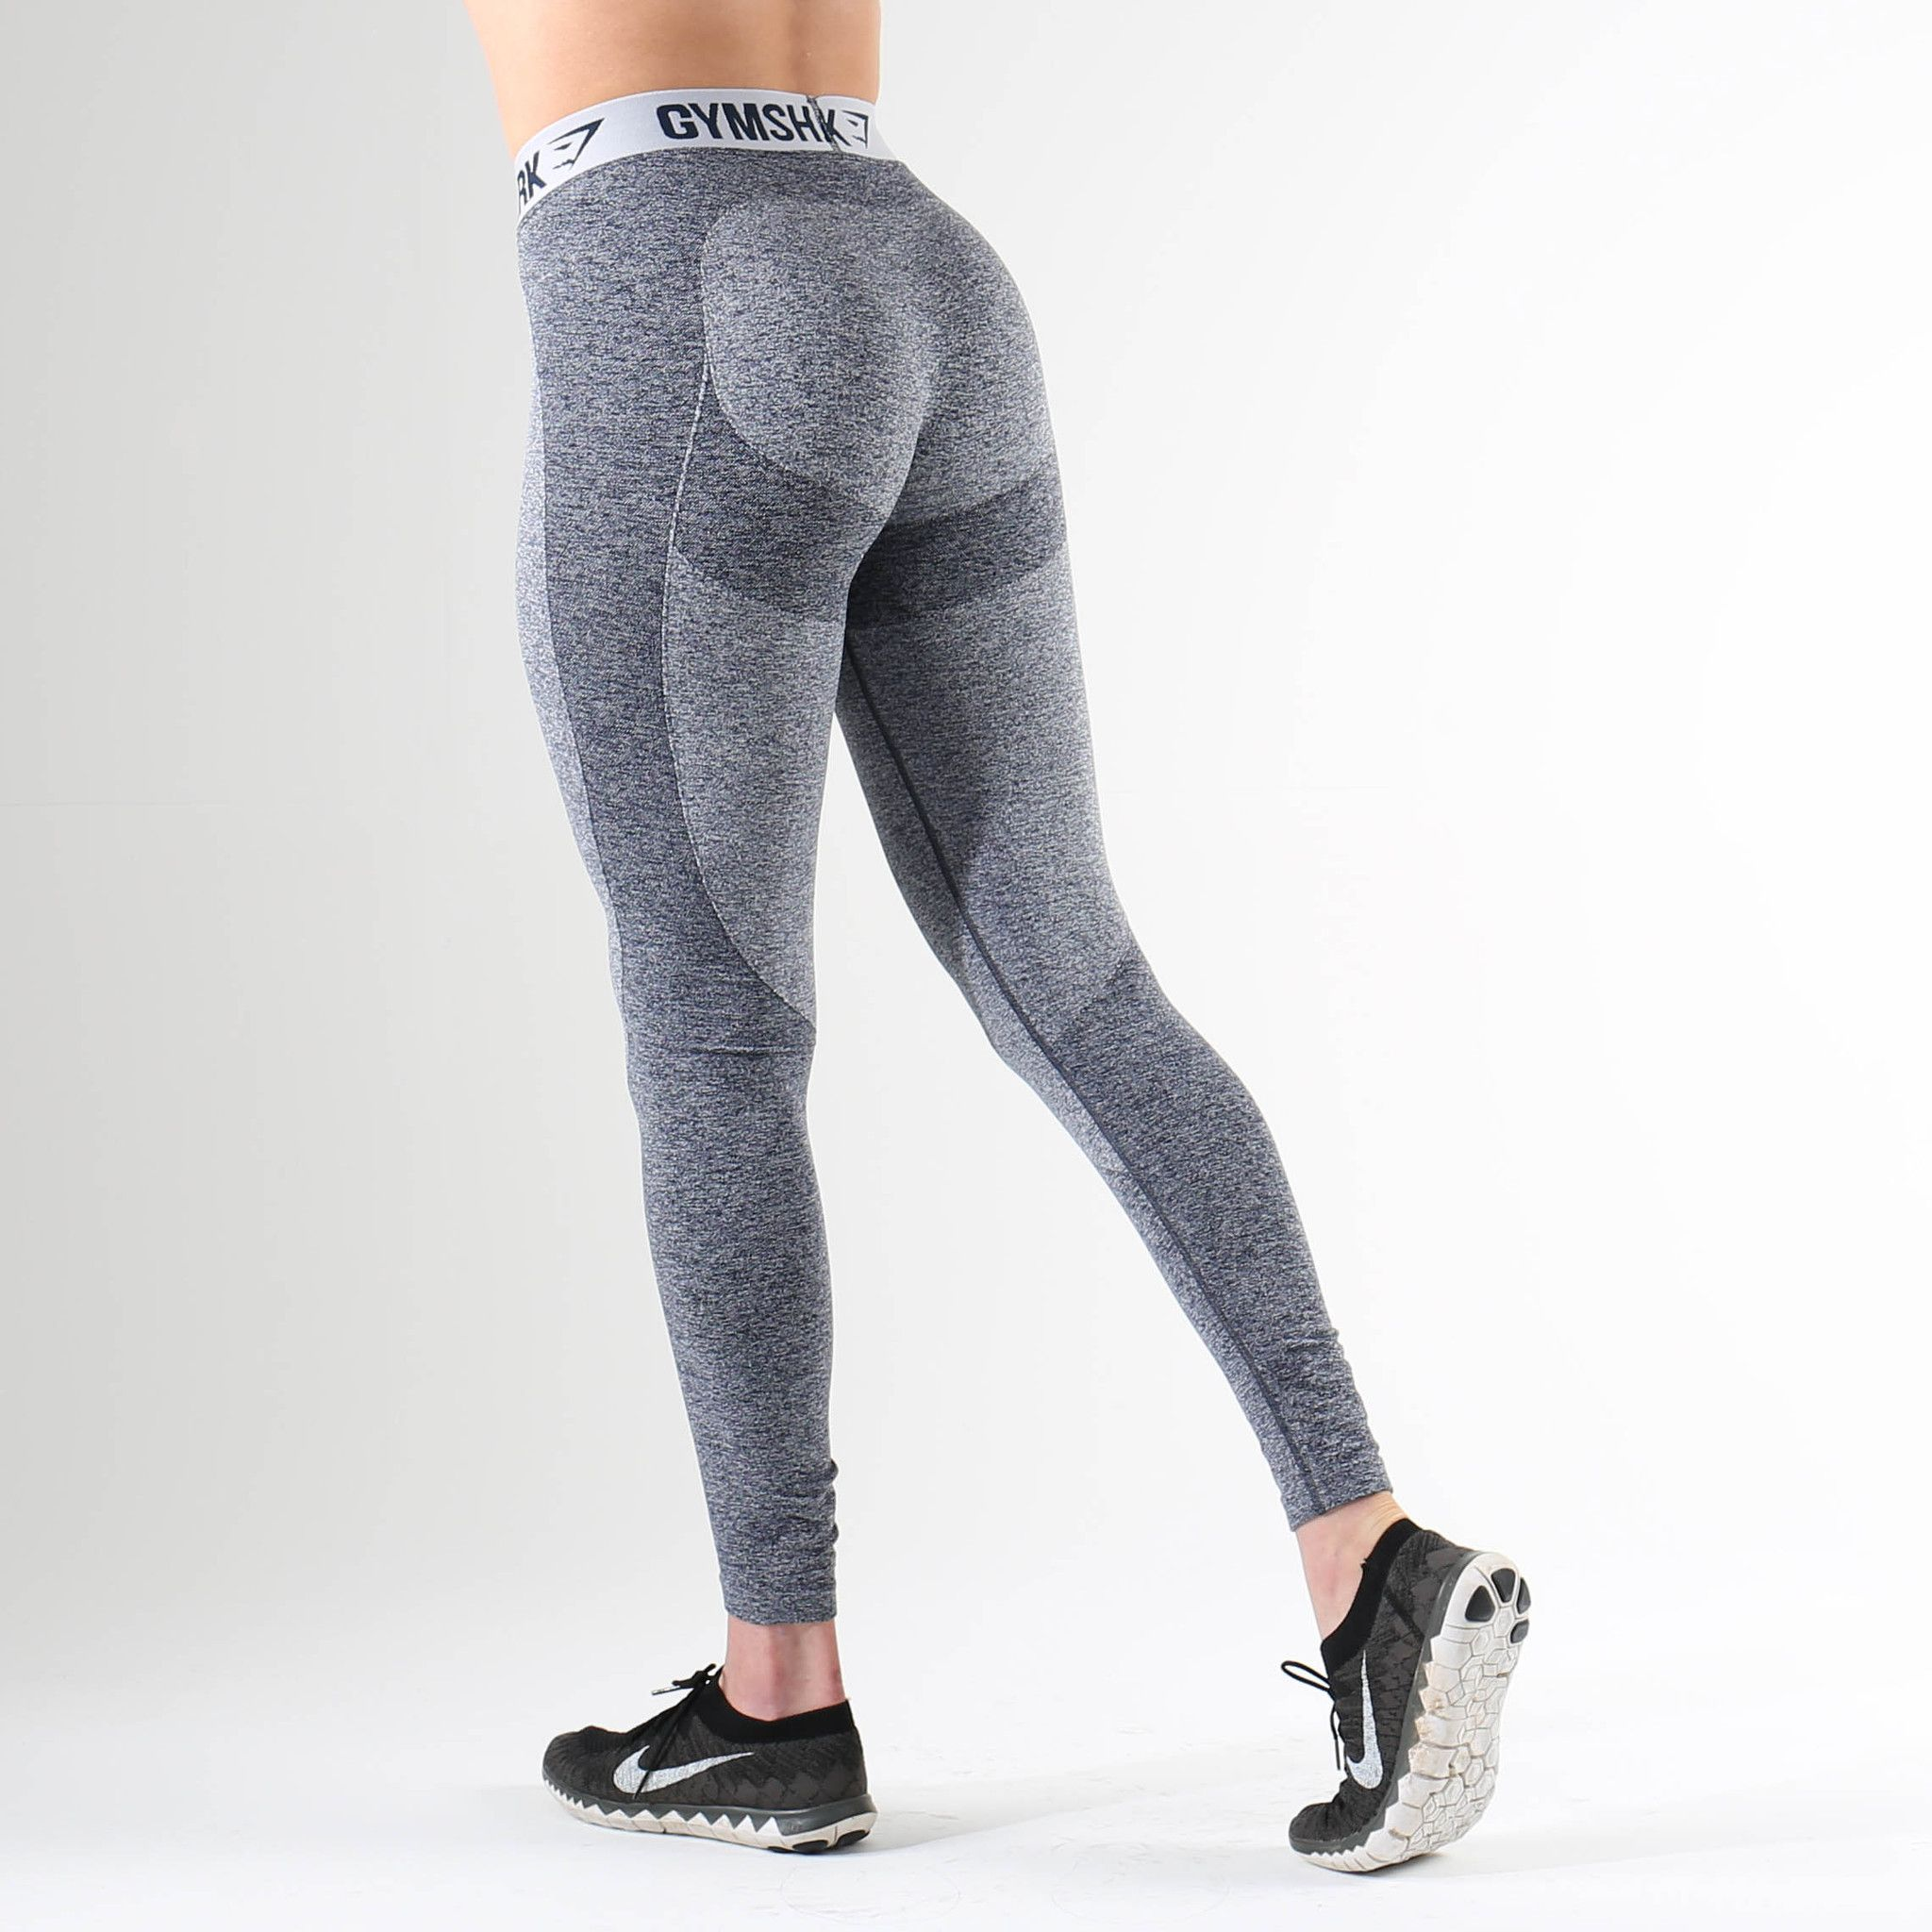 c31142c09a3bb Gymshark Flex Leggings - Sapphire Blue Marl/Light Grey | workout ...